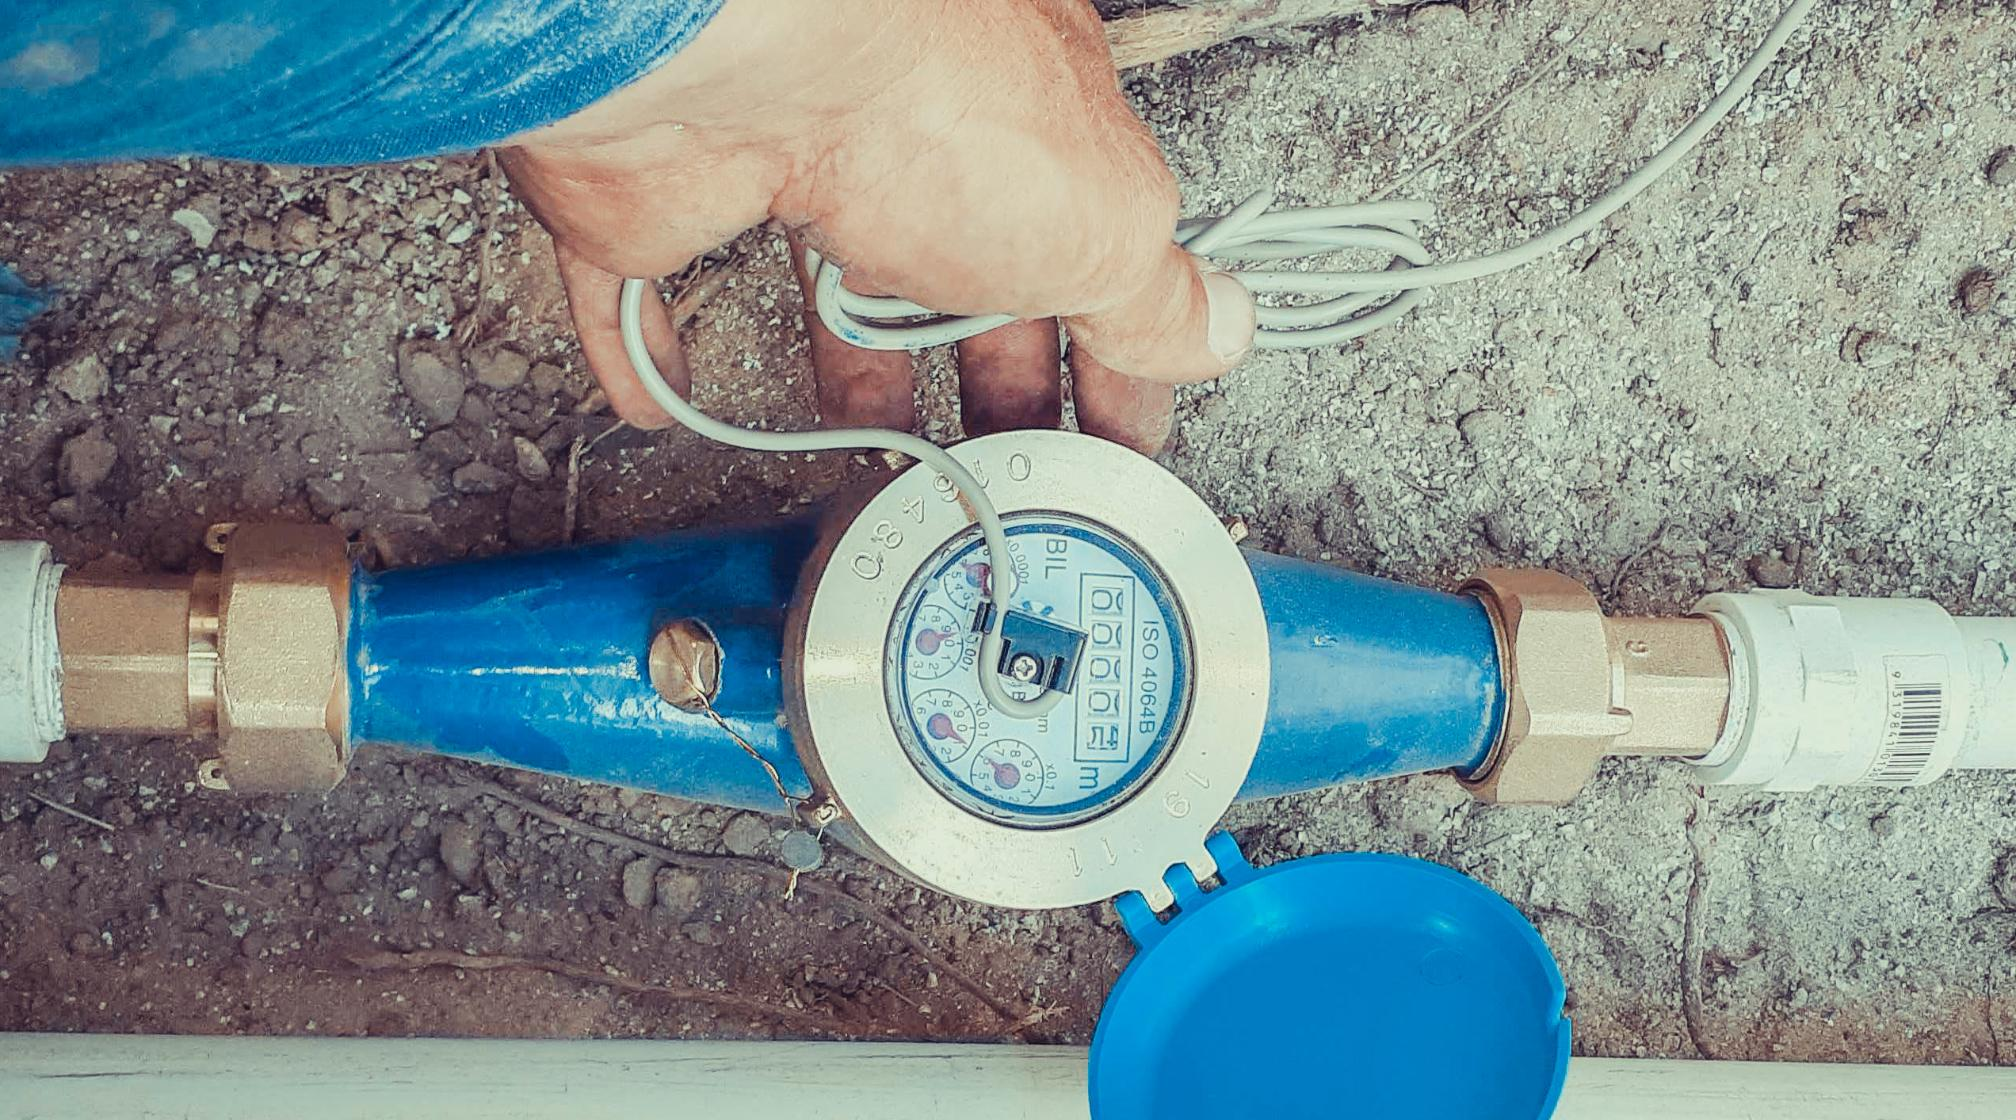 Water bore meter information for irrigation use in Perth.